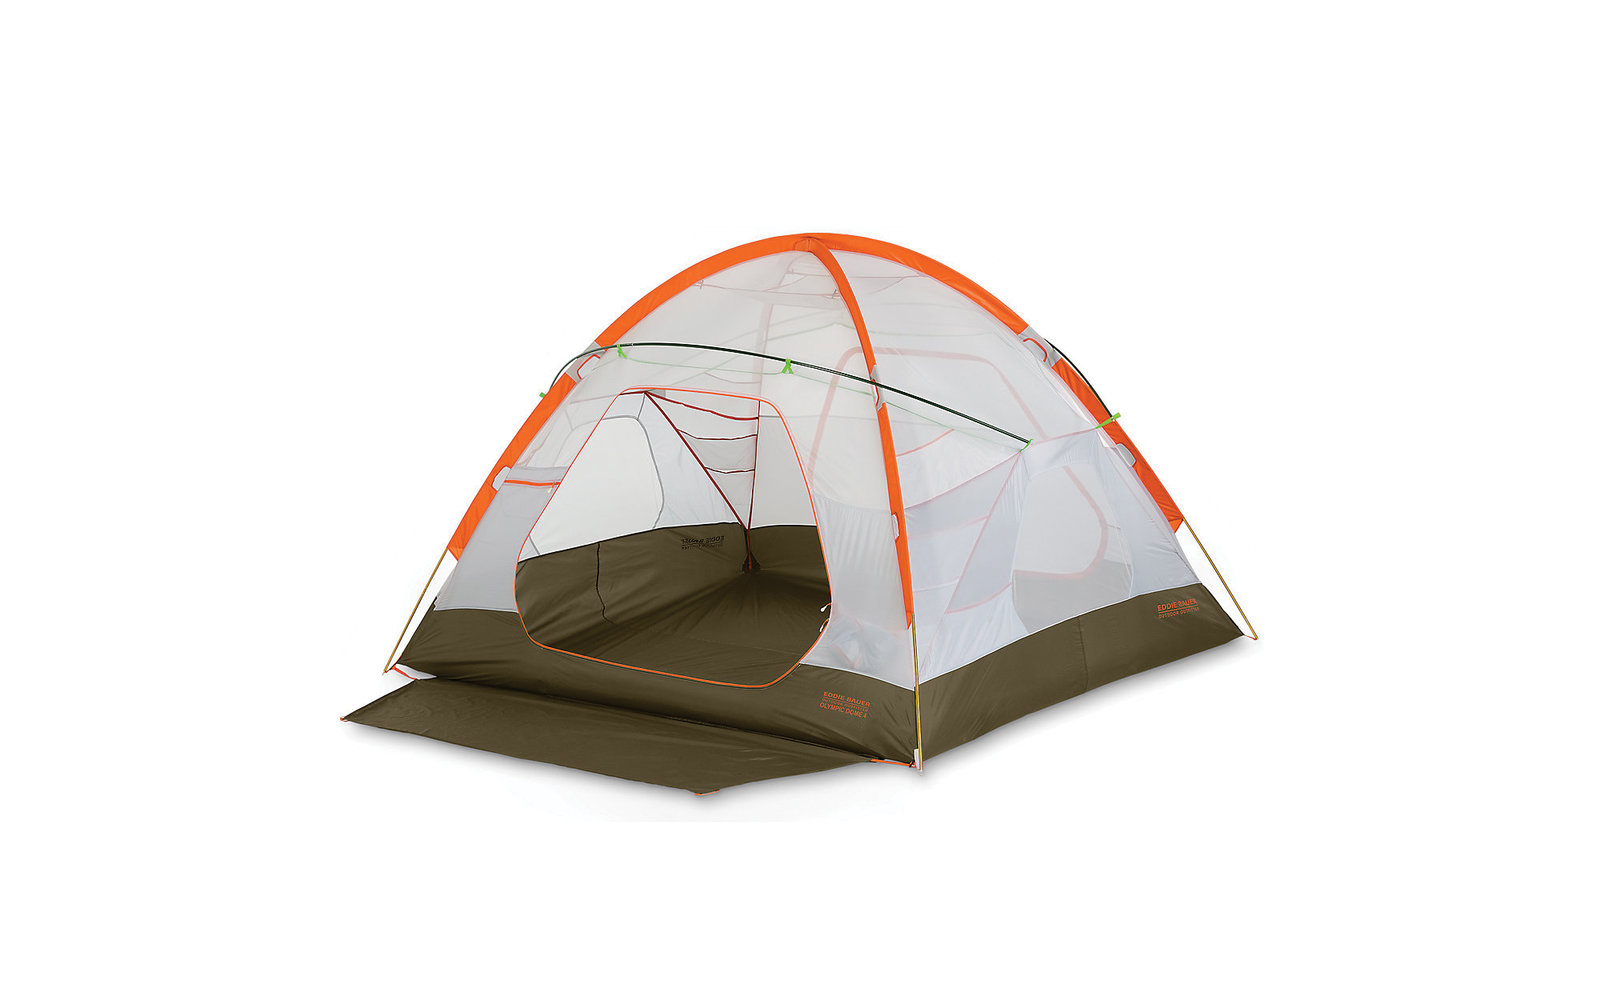 Family C&ing Tent  sc 1 st  Travel + Leisure & Best Camping Tents for Families Hikers and More | Travel + Leisure